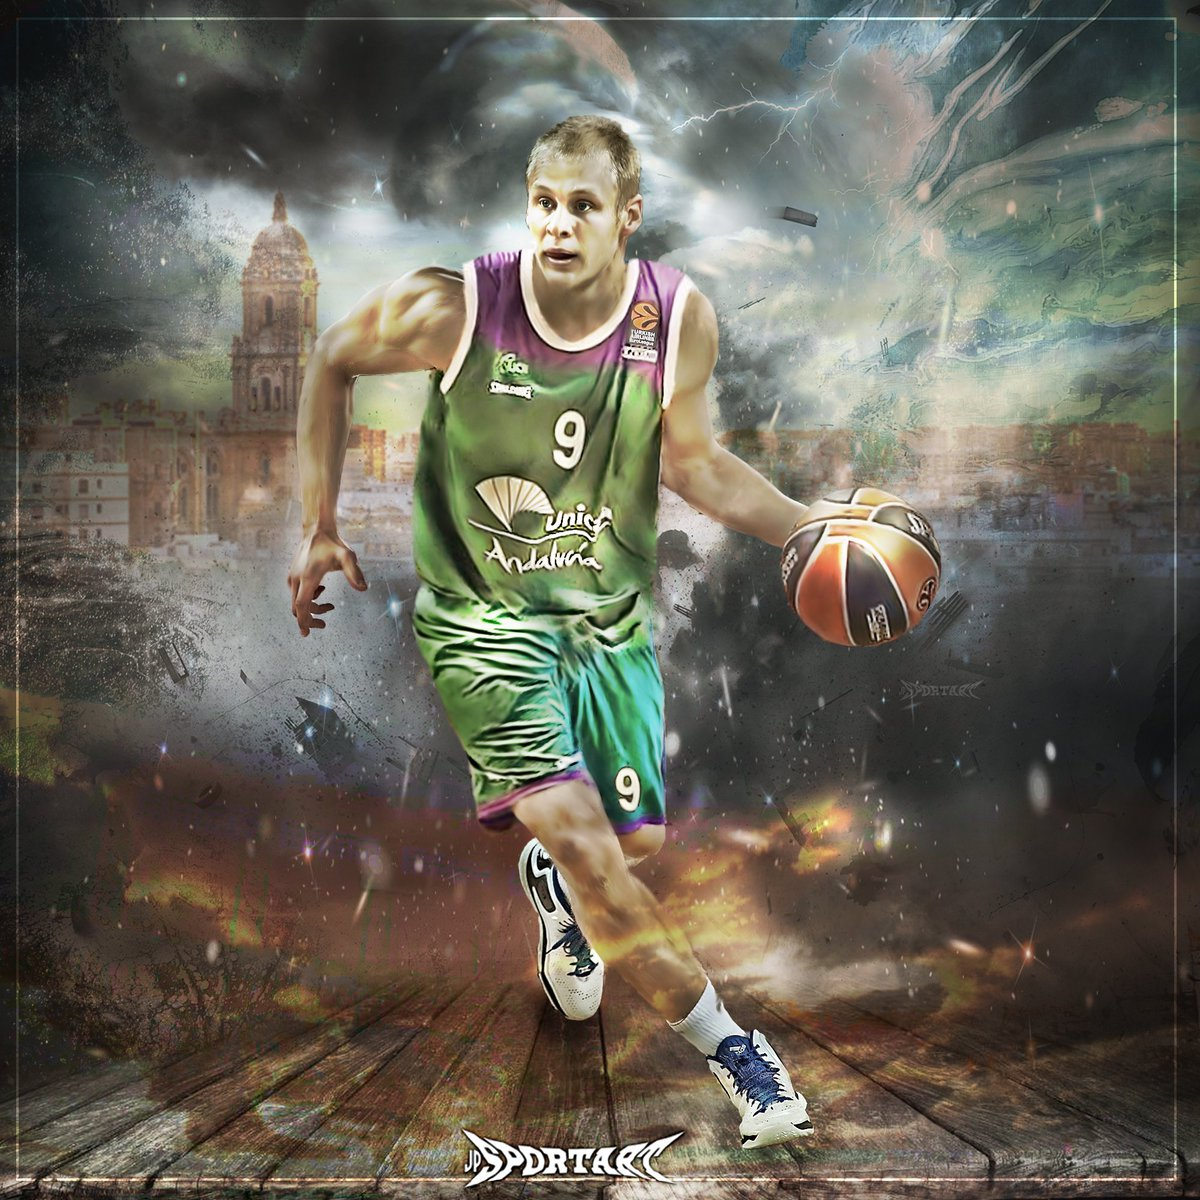 So great to see a new Finnish EuroLeague player! #SasuSalin #UnicajaCB...